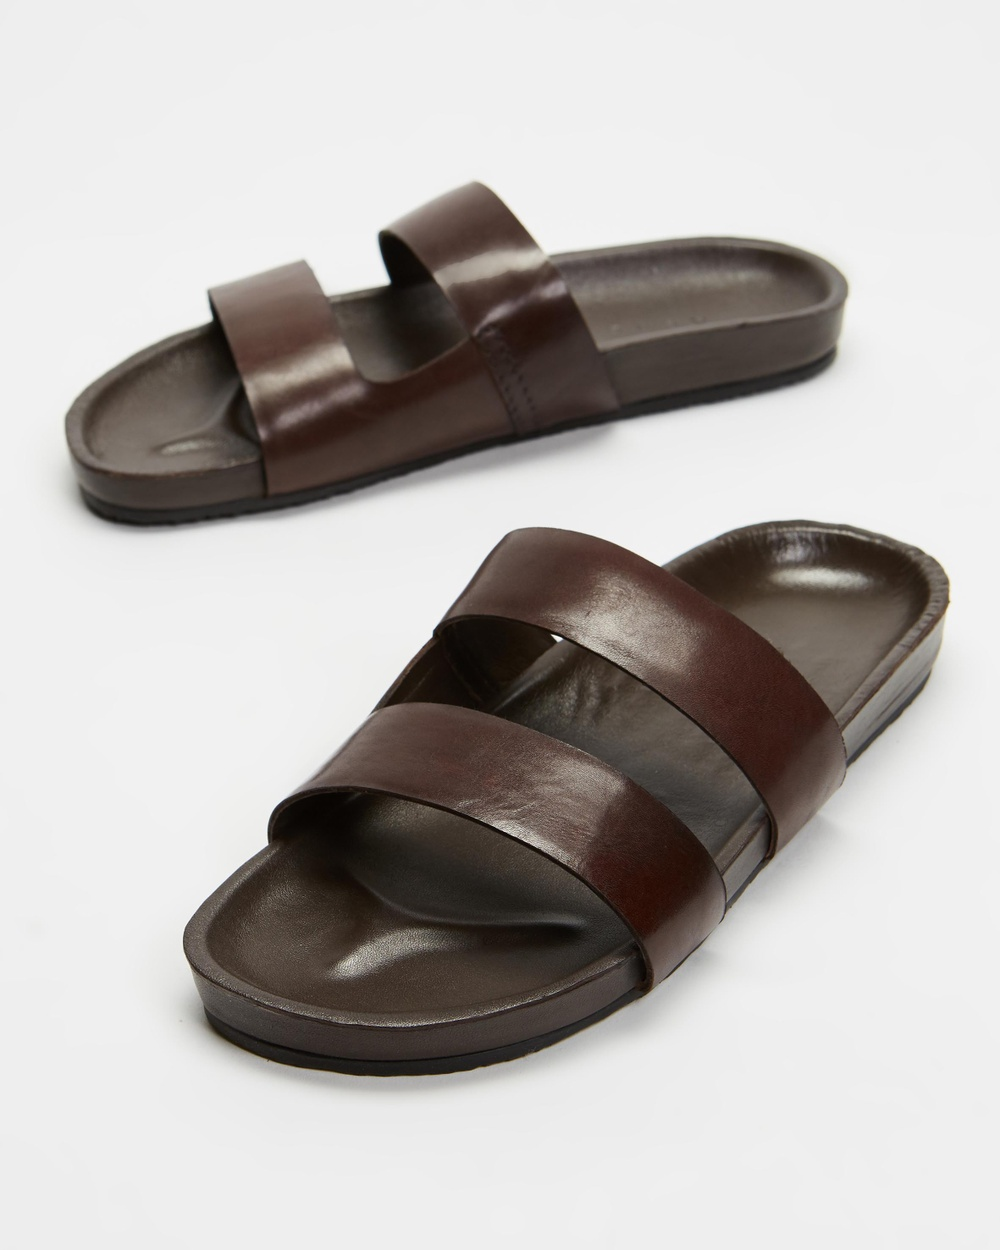 AERE Mojave Leather Slides Casual Shoes Brown